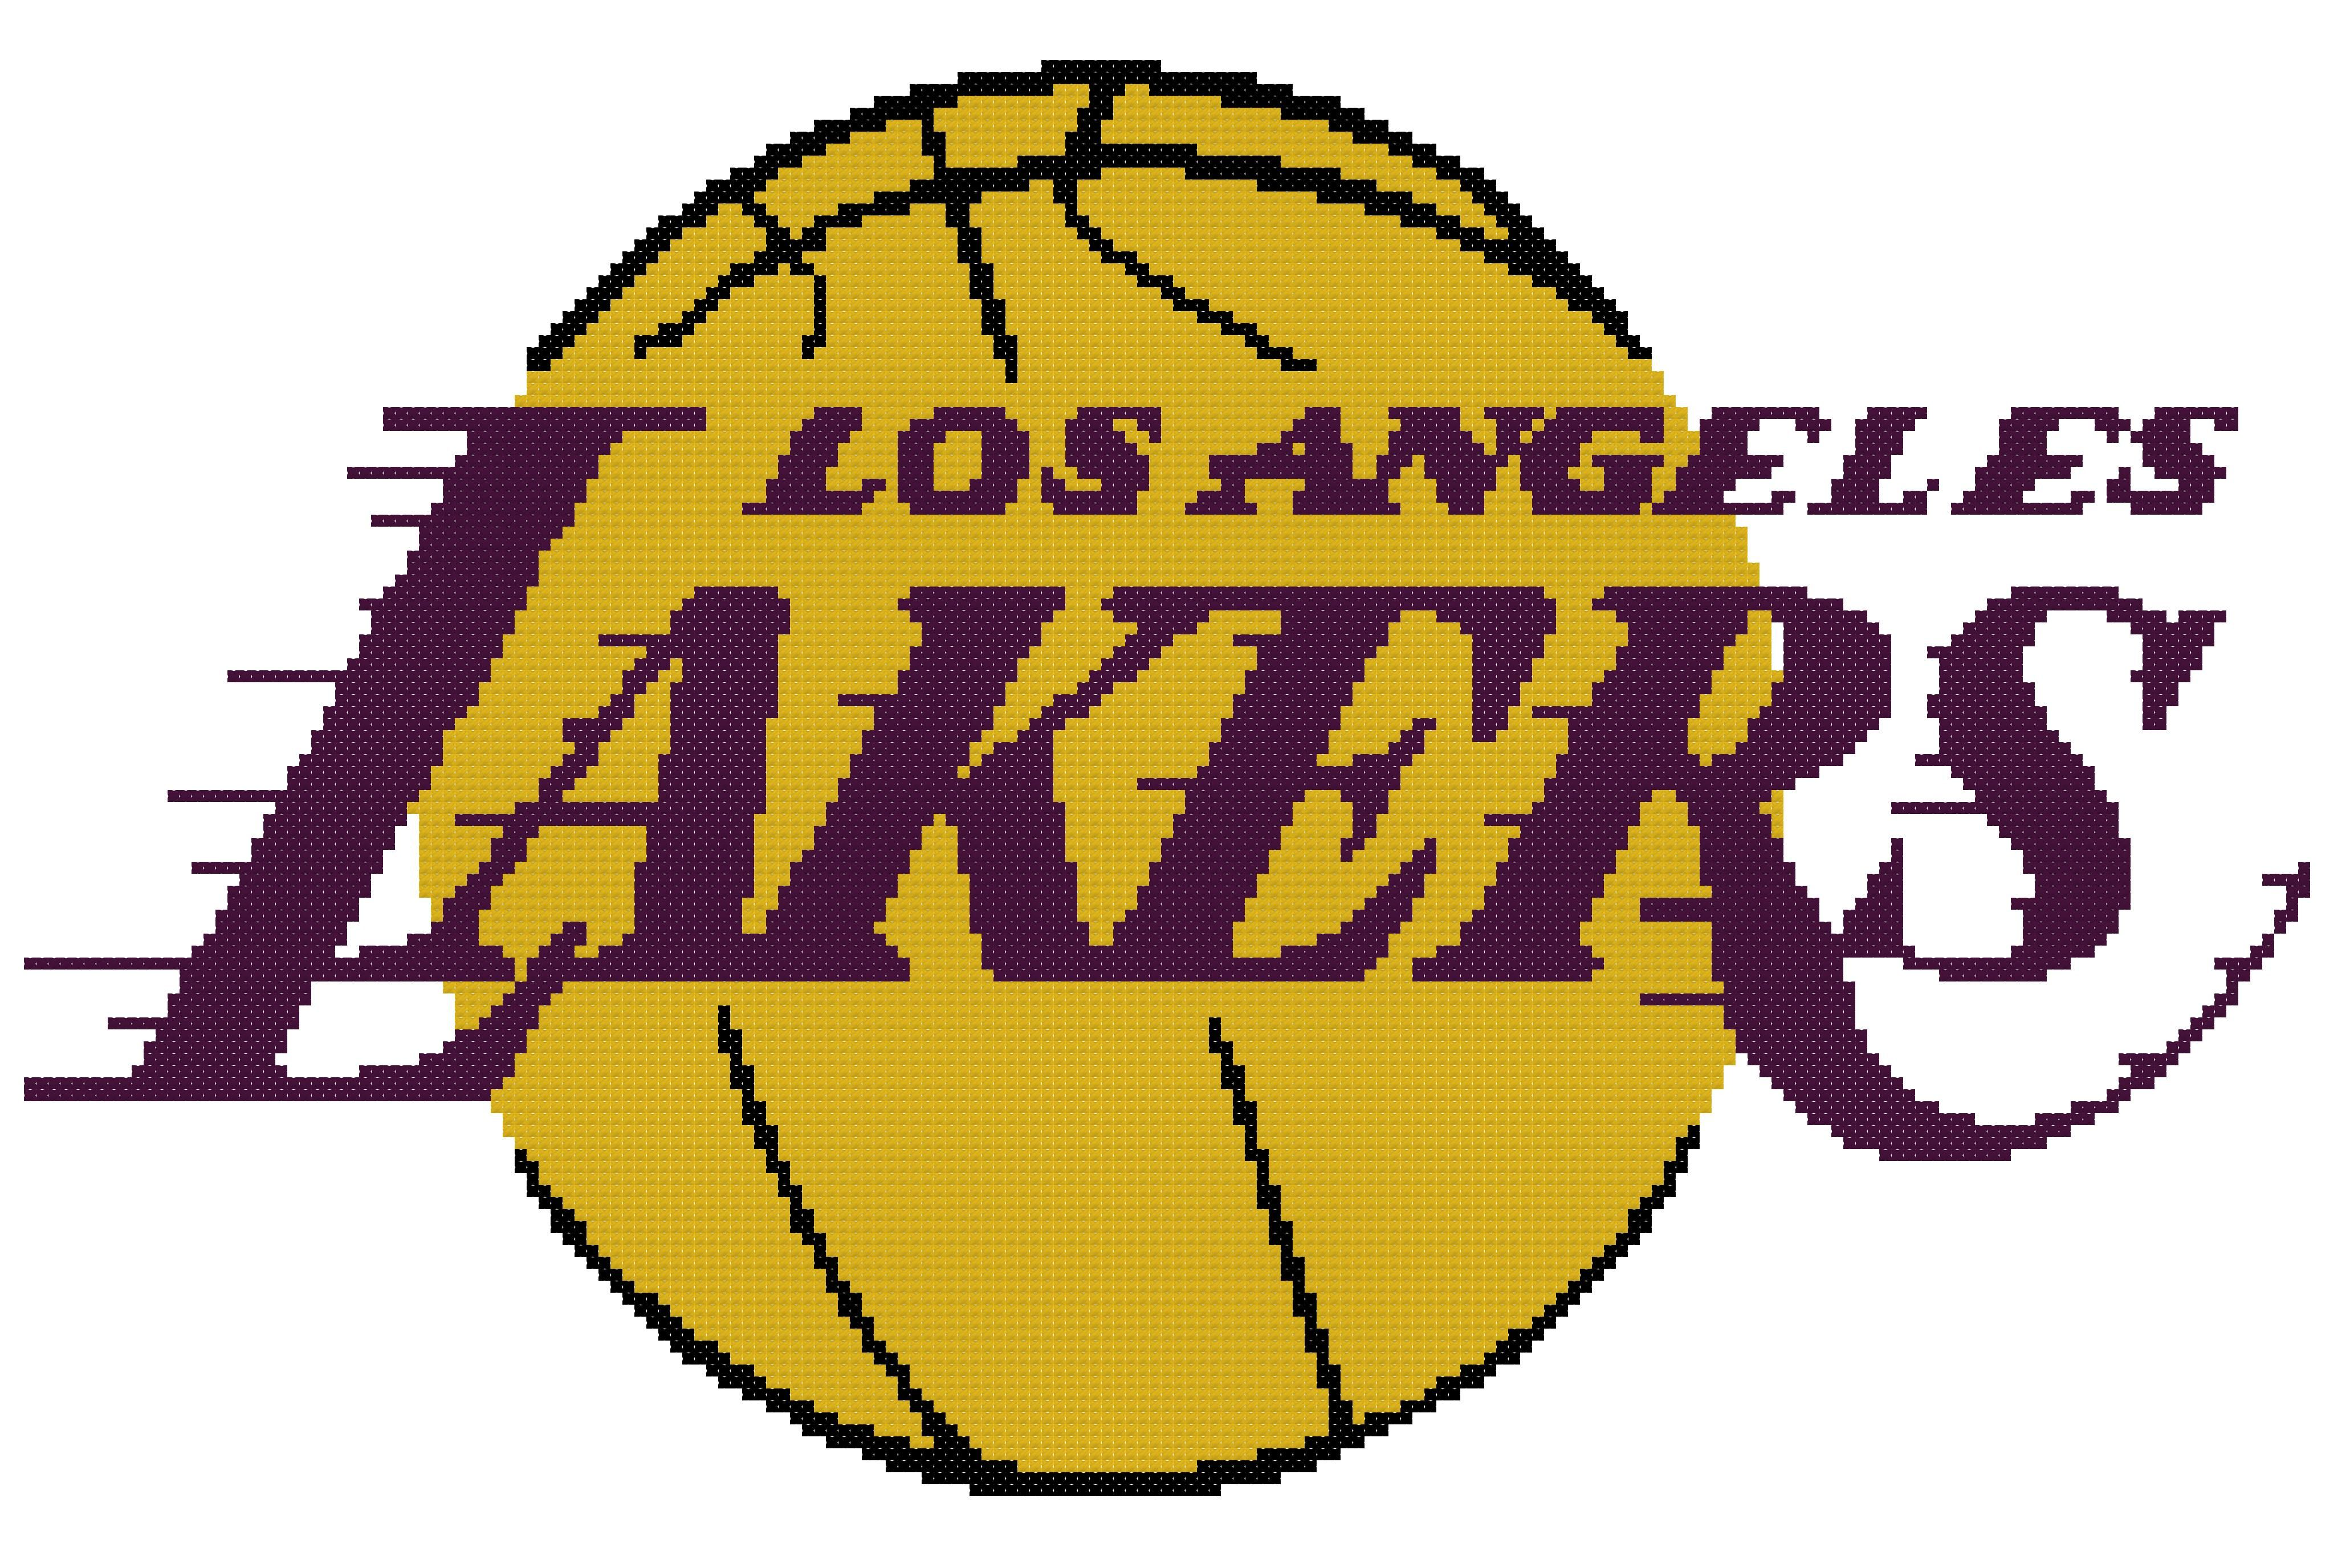 Counted Cross Stitch Pattern Los Angeles Lakers Logo Counted Cross Stitch Patterns Cross Stitch Patterns Los Angeles Lakers Logo